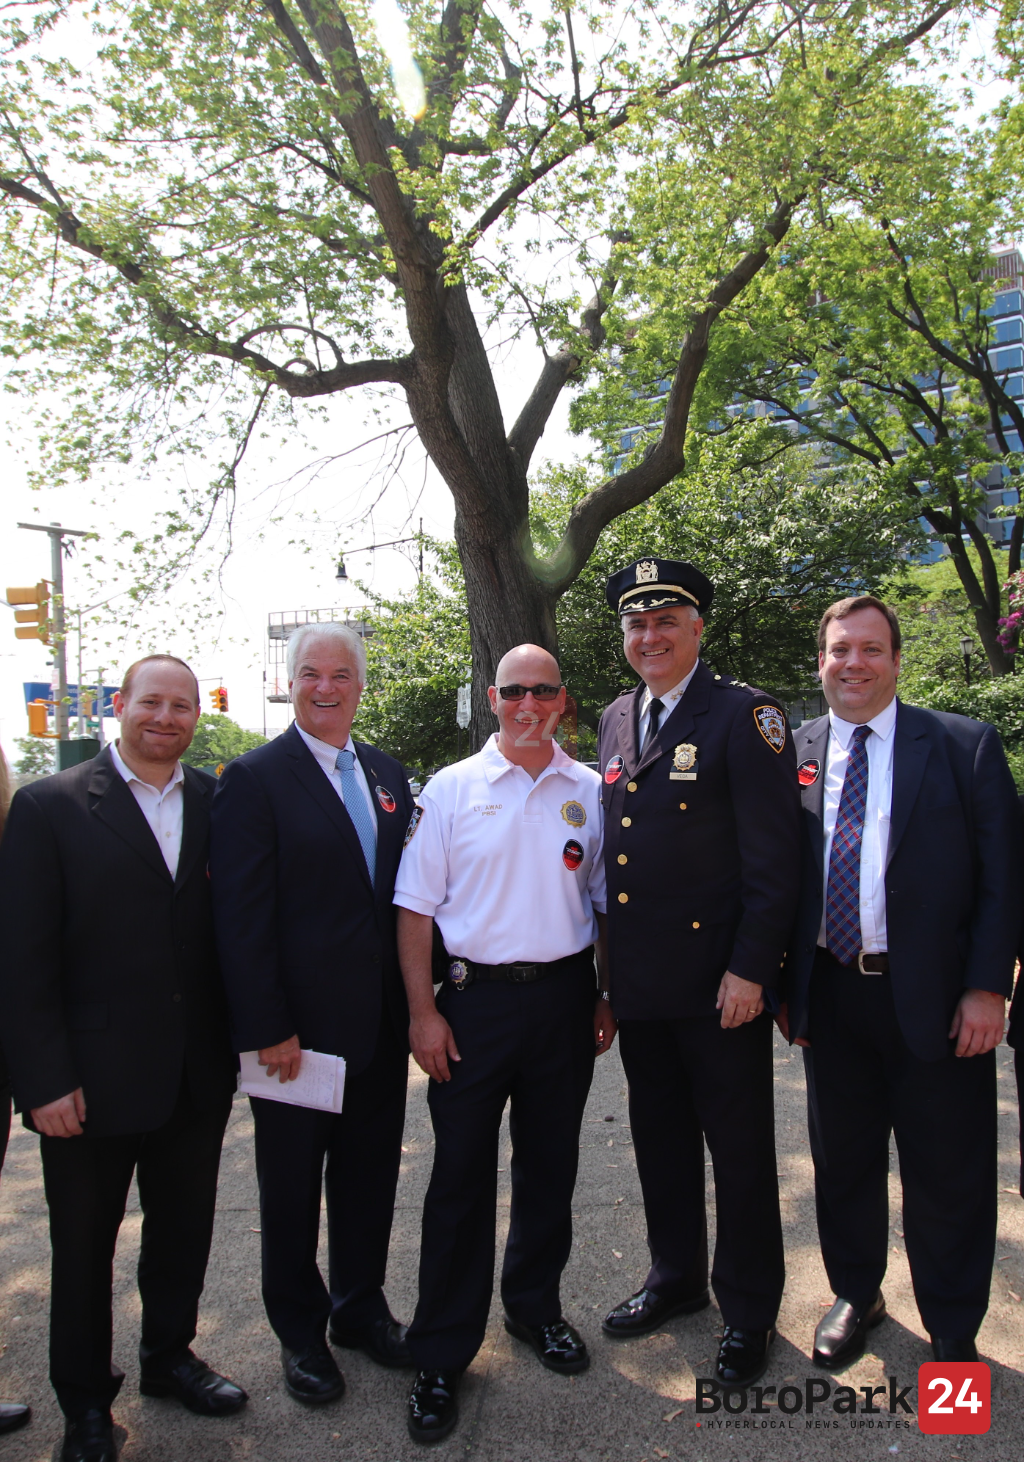 District Attorney Michael E. McMahon Organizes Staten Island Rally and Press Conference Against Hate